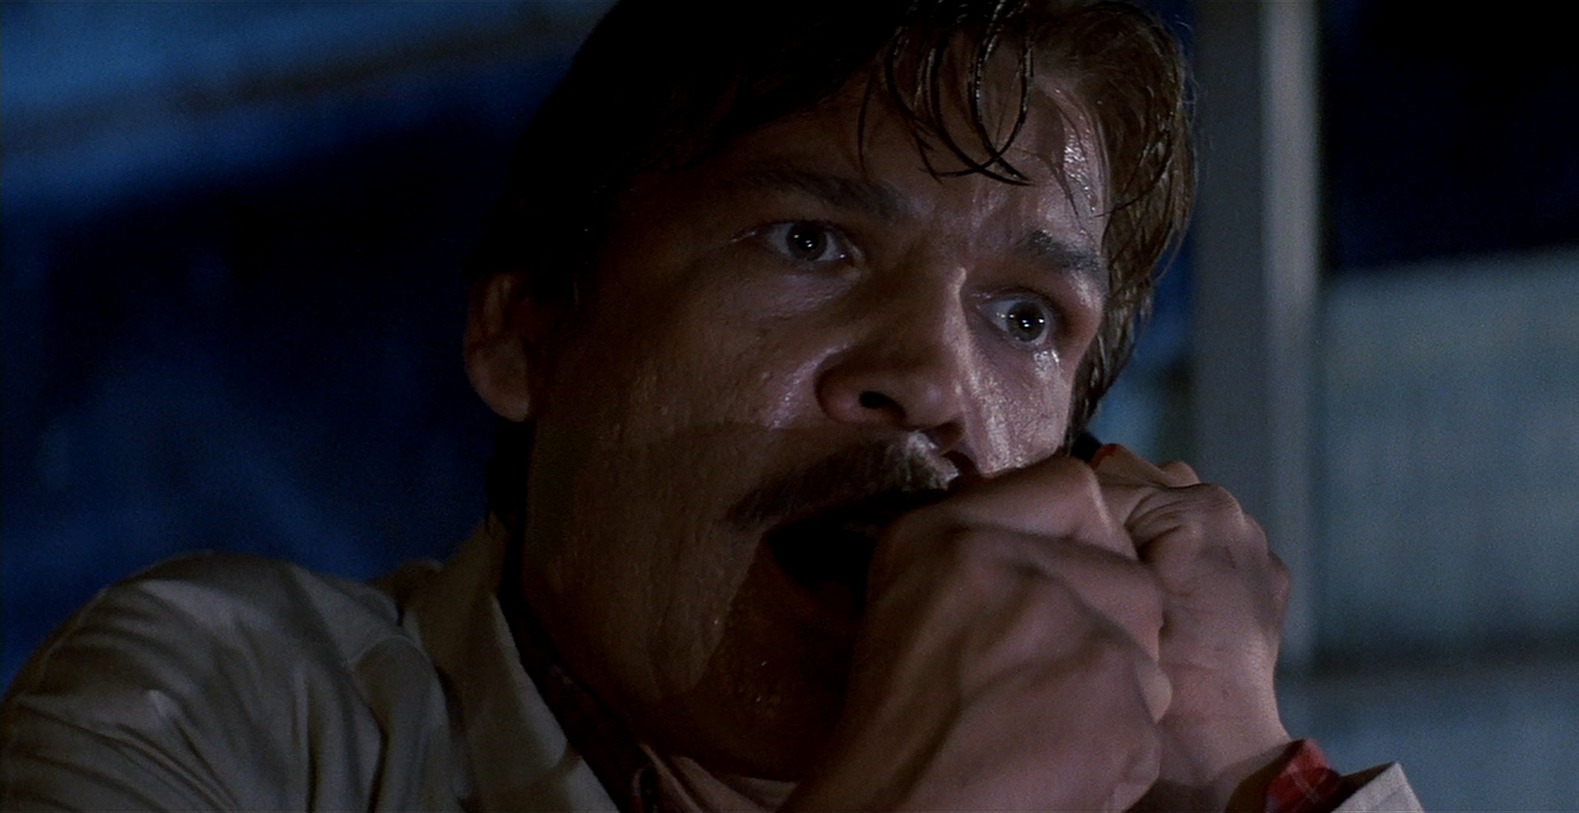 'Halloween III' Star Tom Atkins Says He Would Love a Cameo Return to the 'Halloween' Franchise - Bloody Disgusting